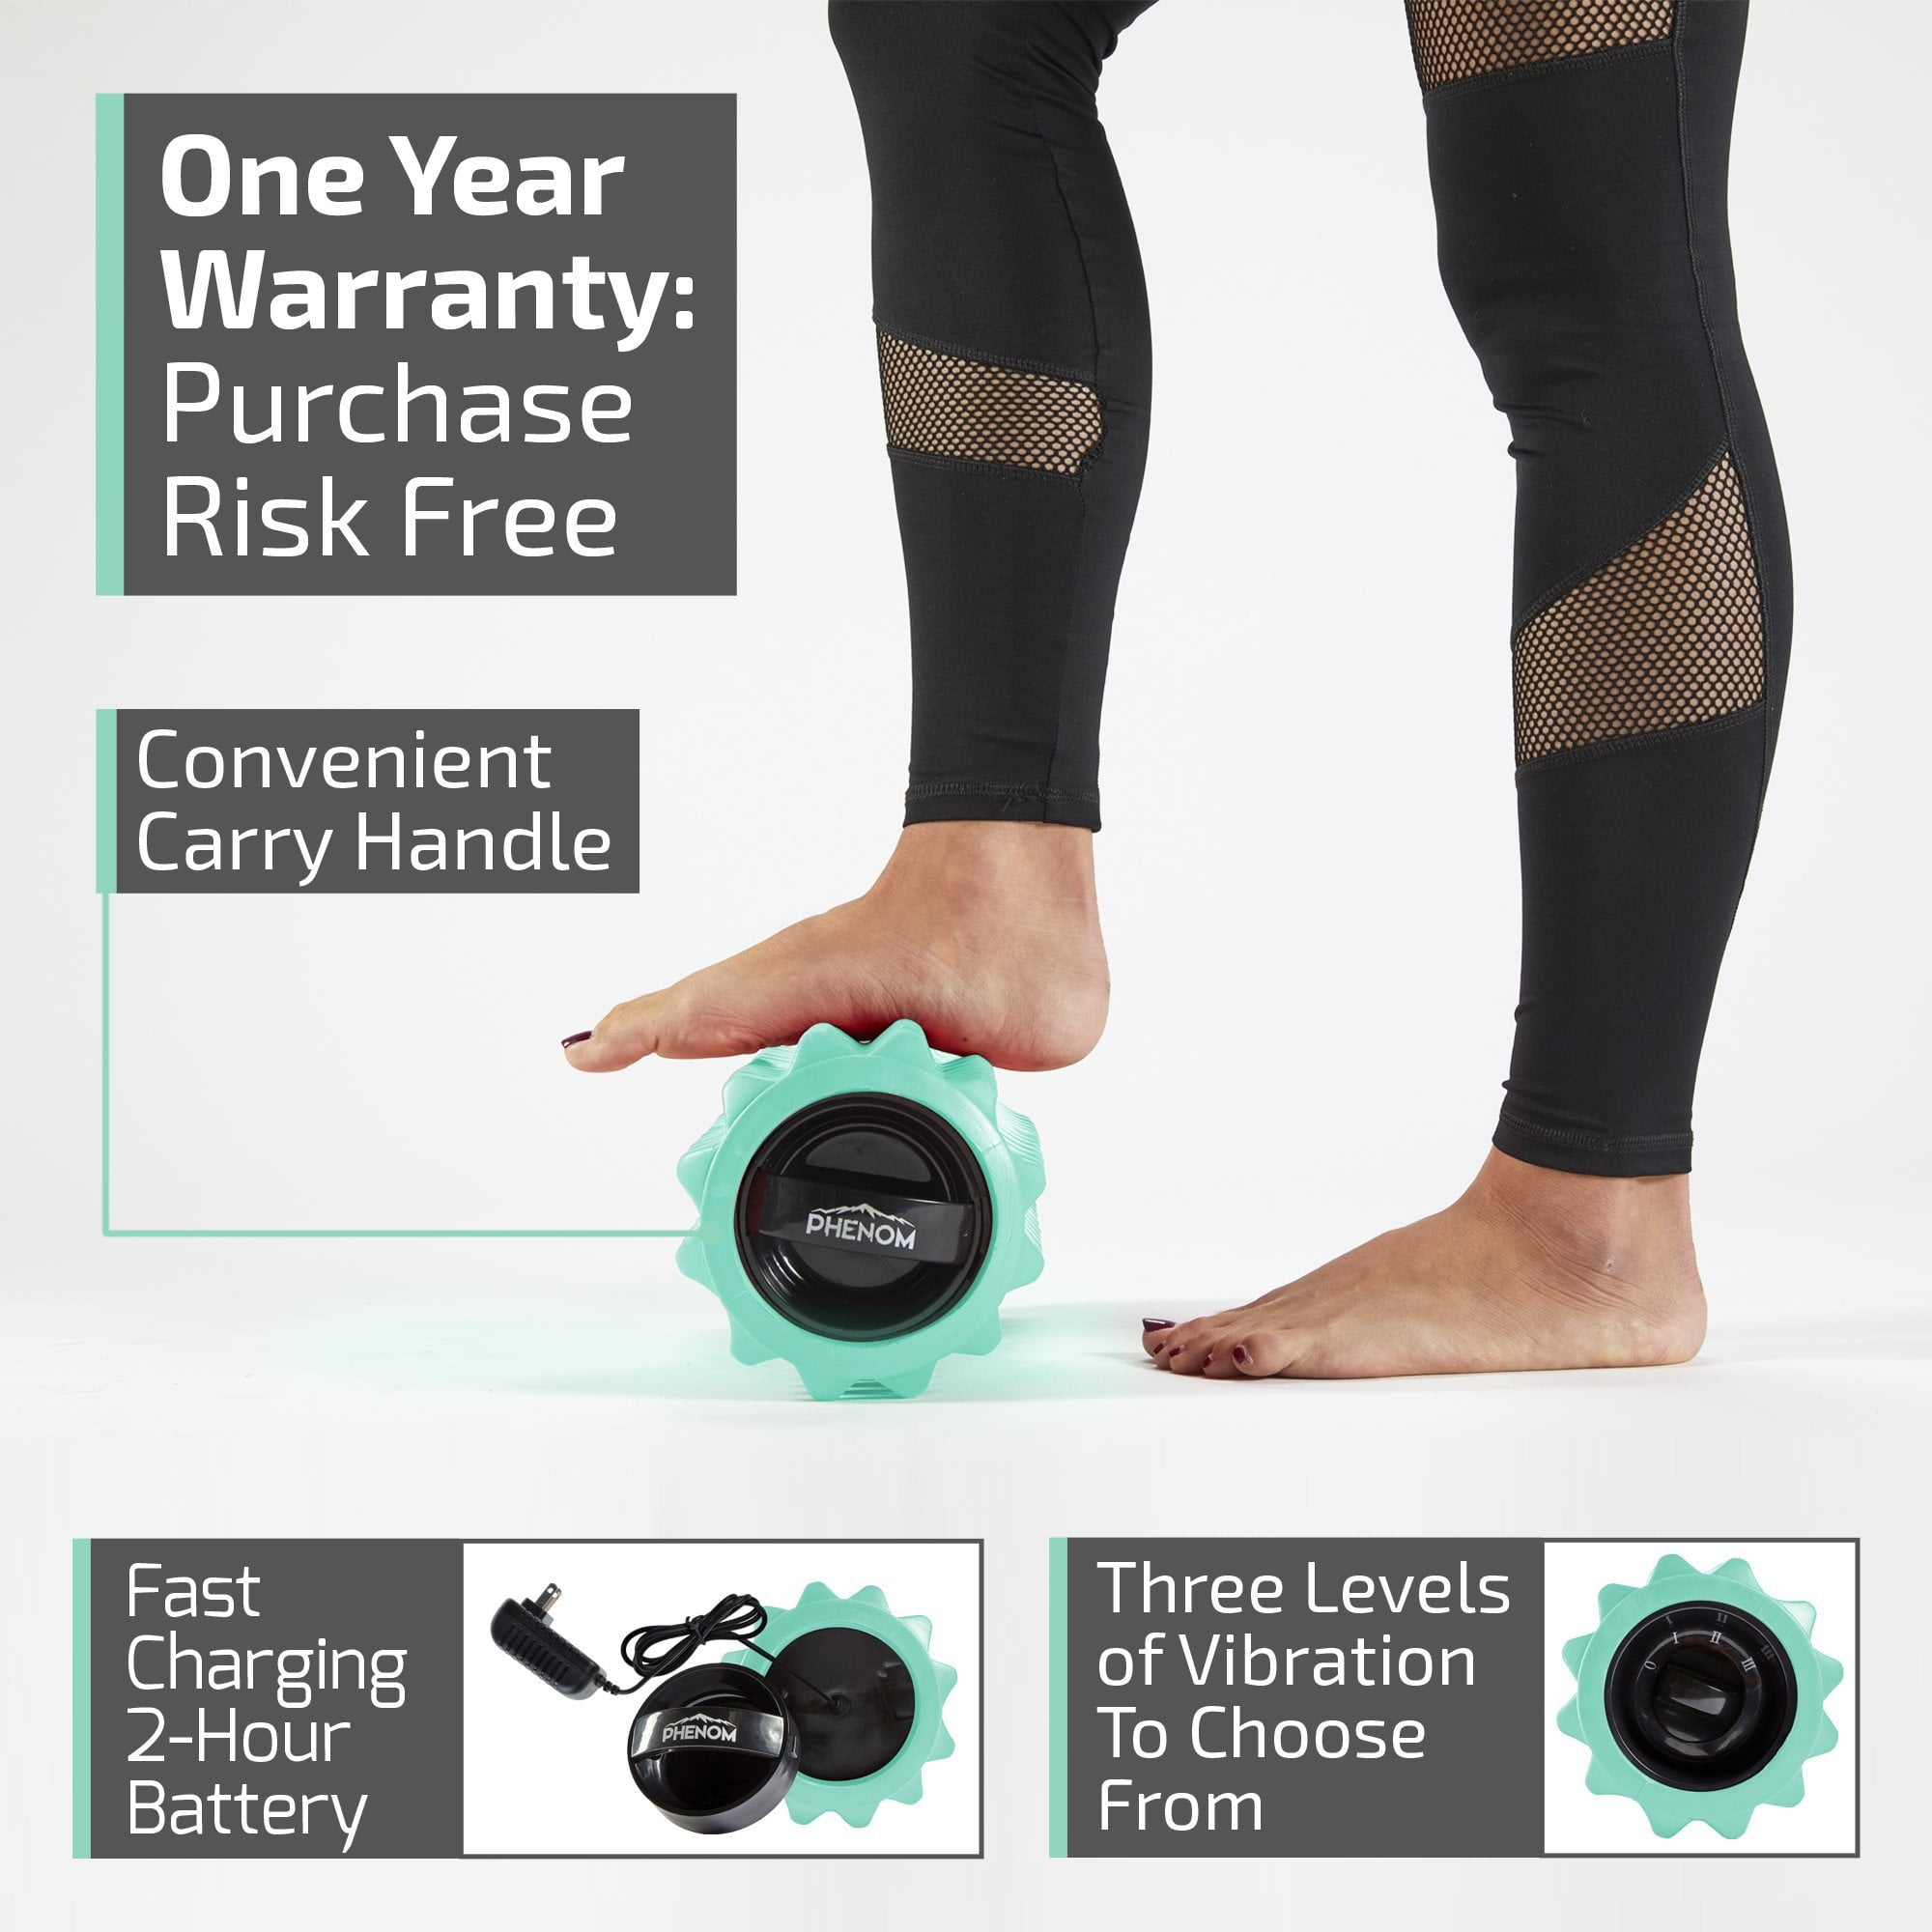 Phenom 3 Speed Electric Rechargeable Vibrating Foam Roller